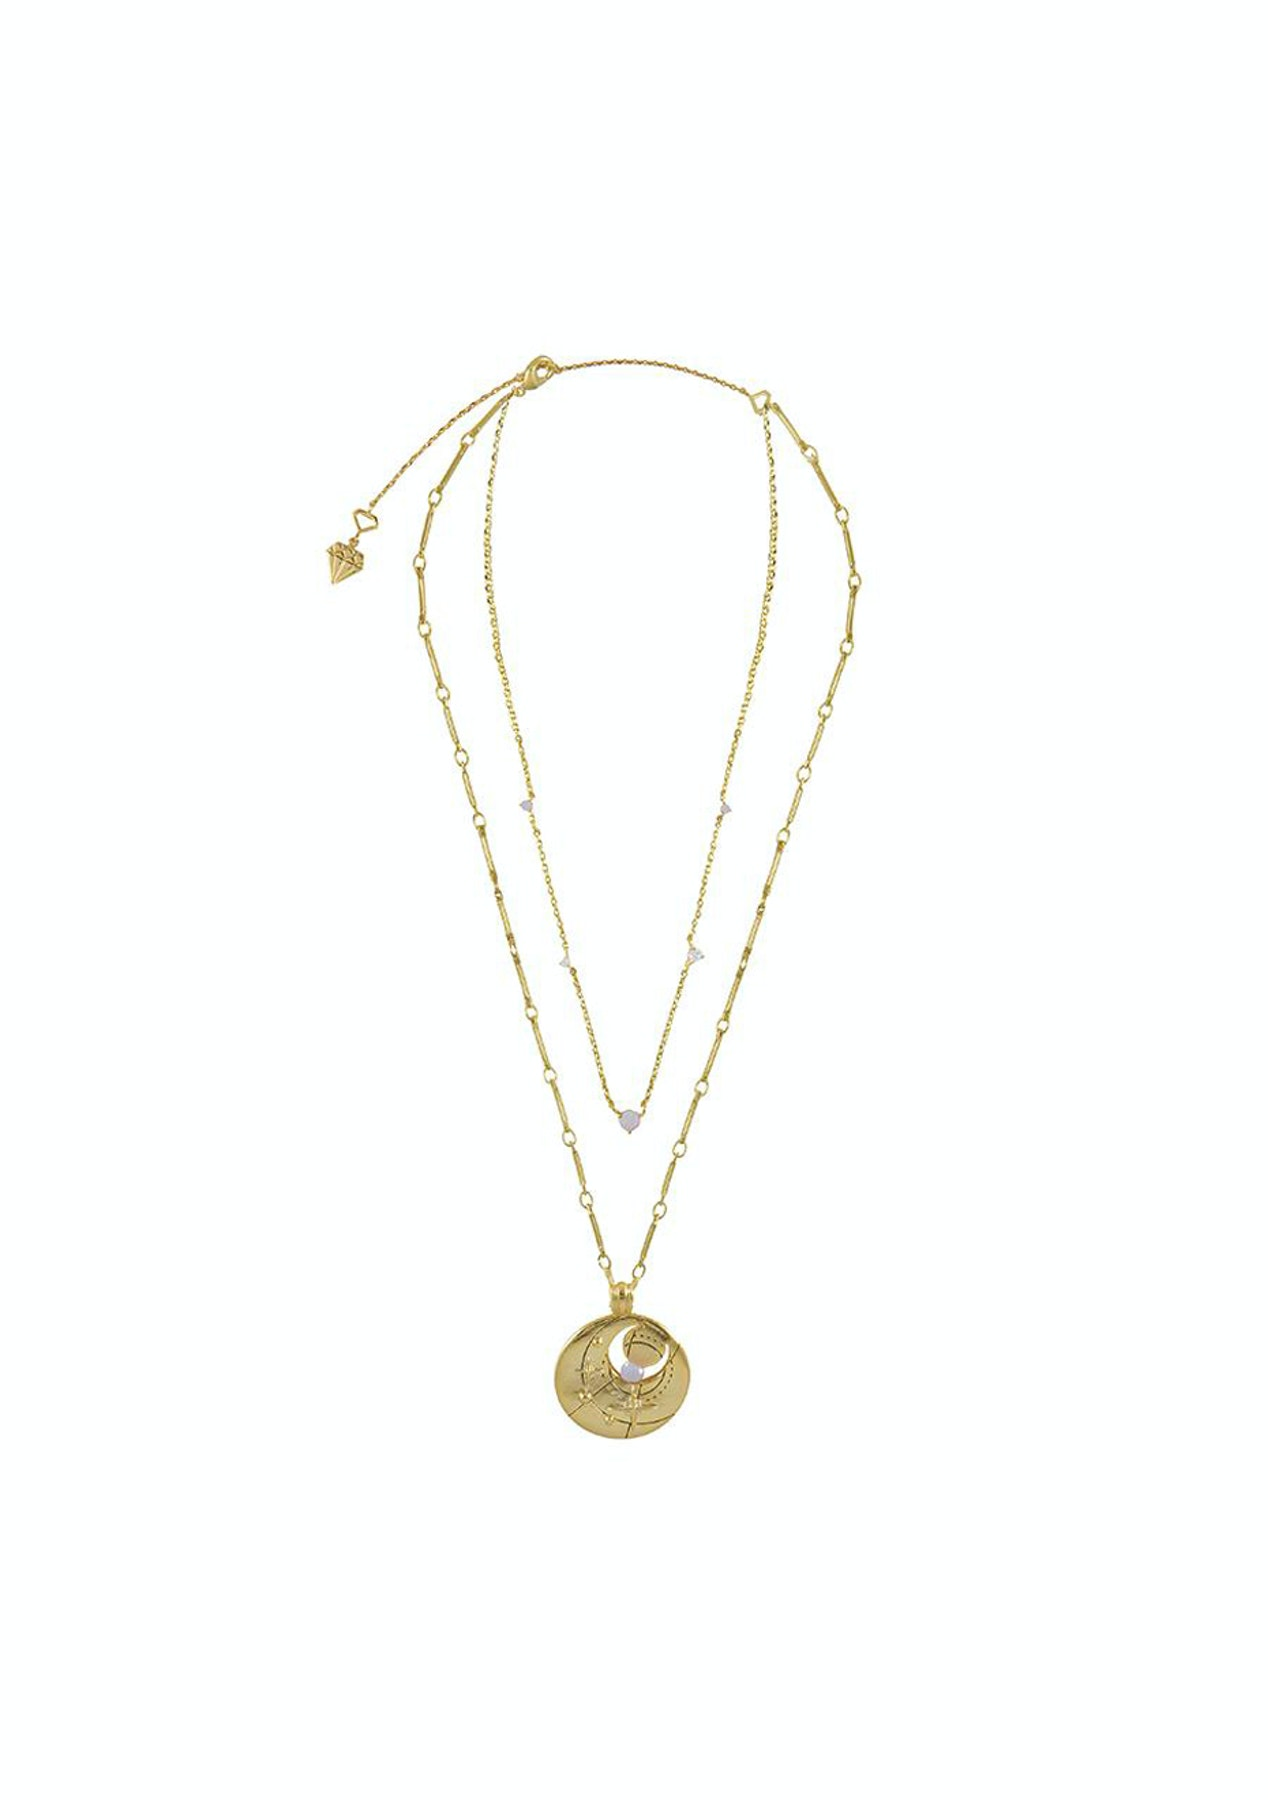 479411309e49d Wanderlust + Co - October Birthstone Gold Necklace